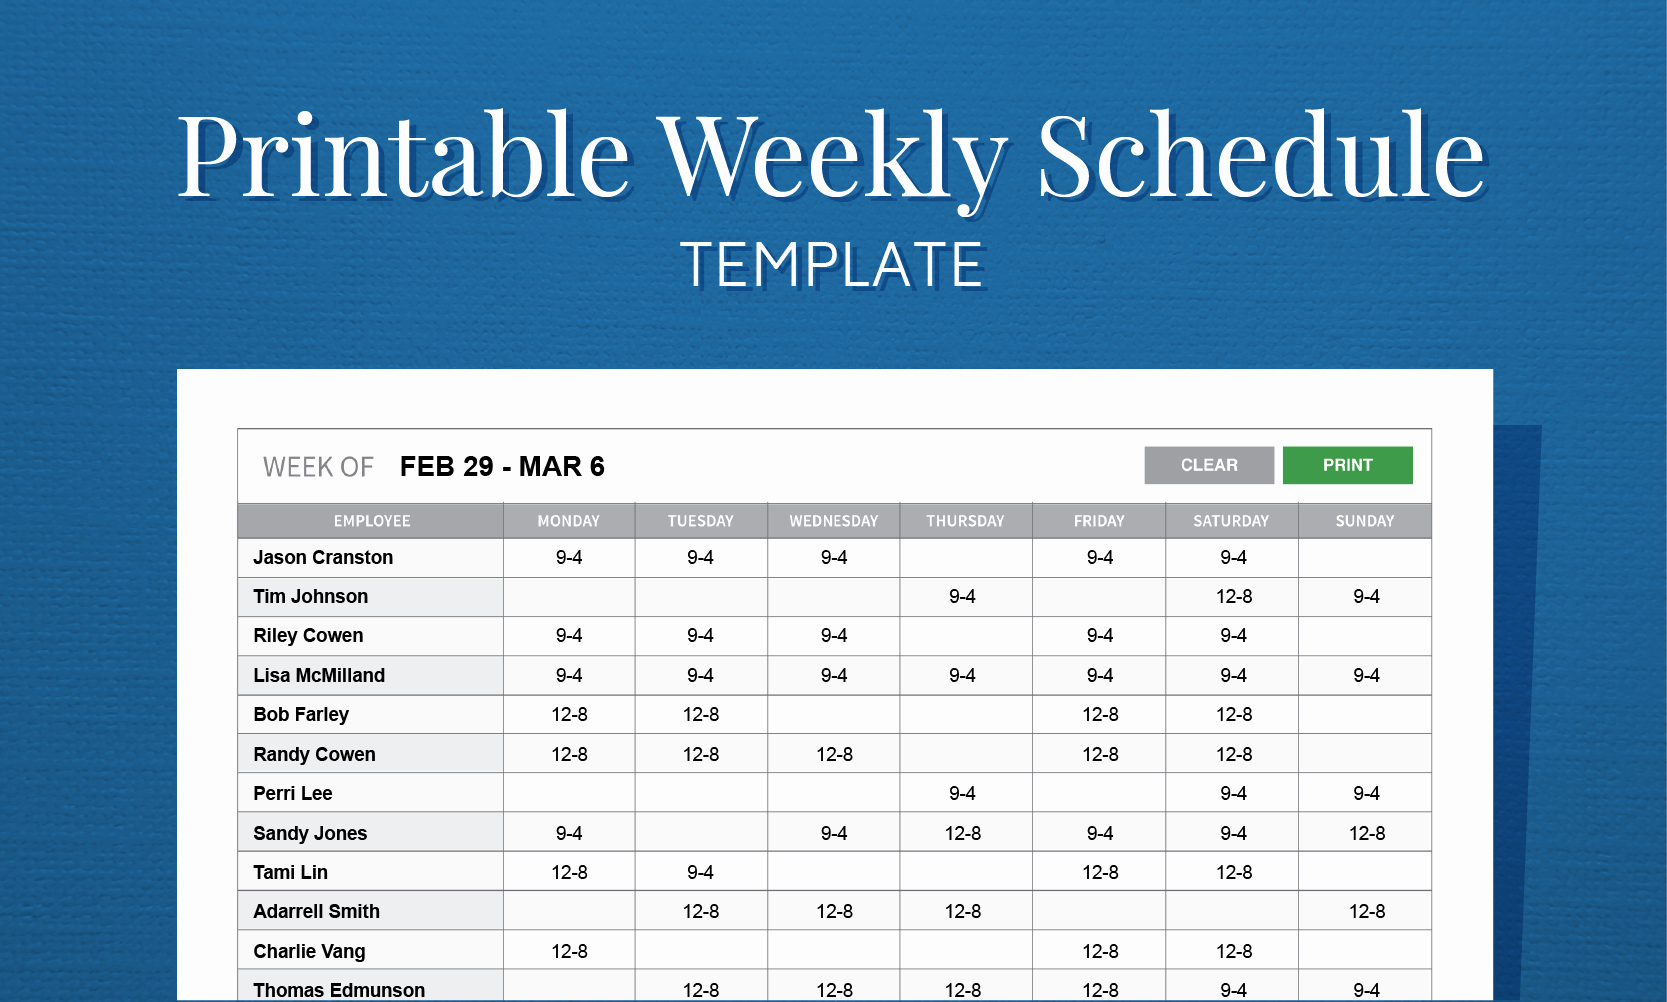 Free Weekly Work Schedule Template Fresh Free Printable Weekly Work Schedule Template for Employee